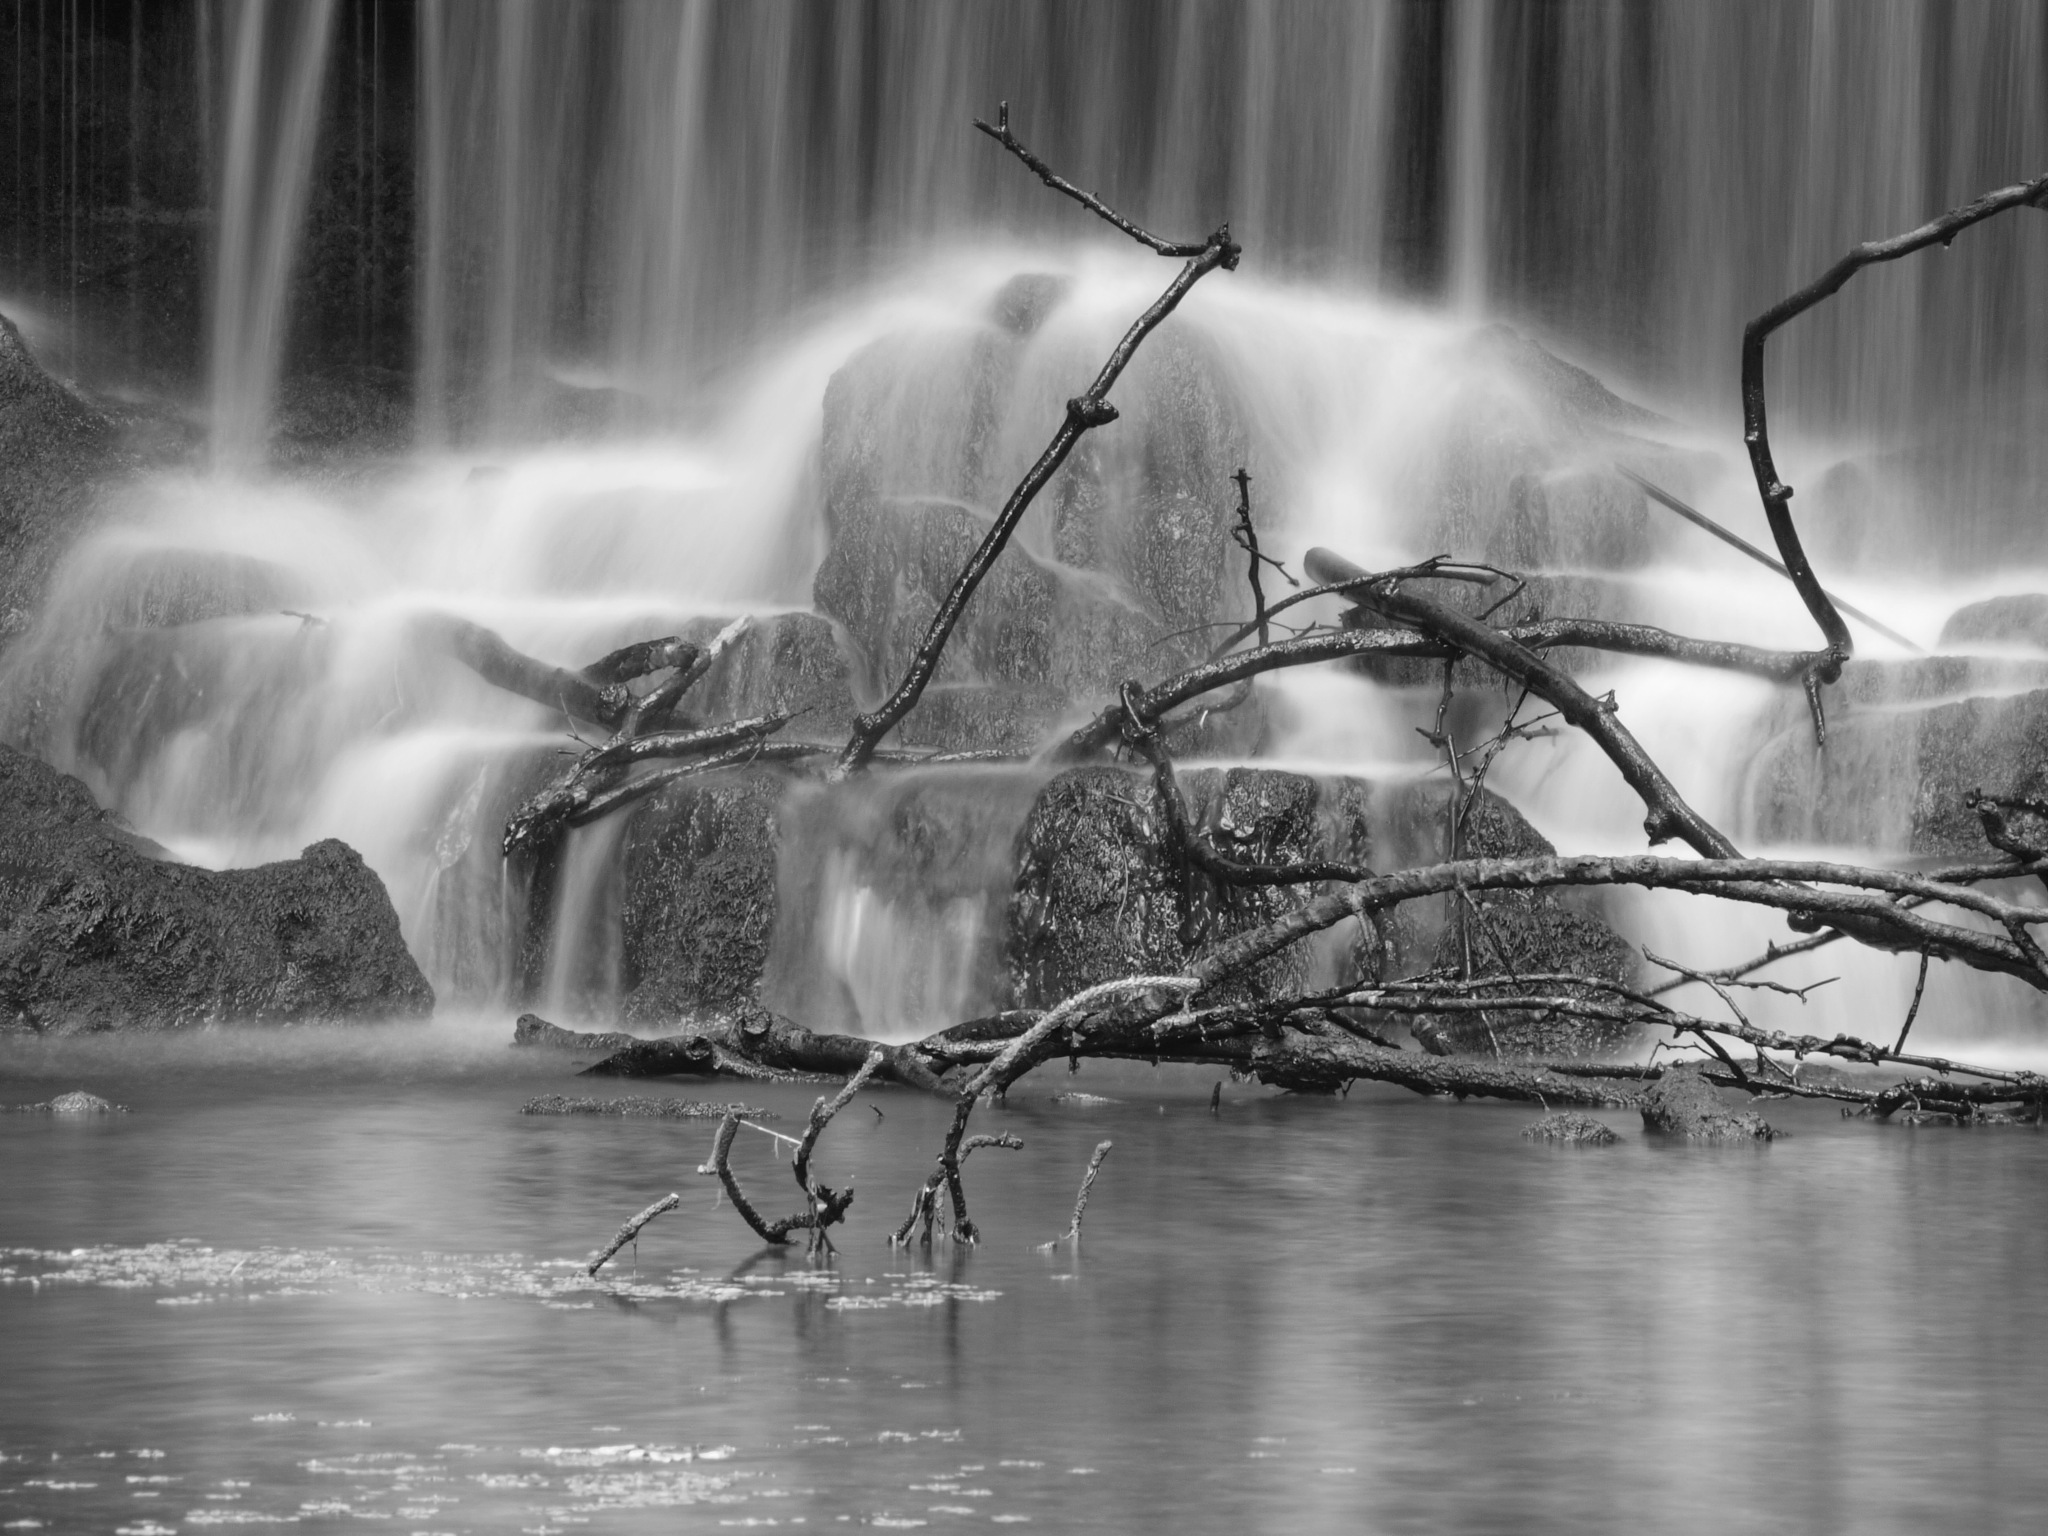 Waterfall by Laurent Theodore